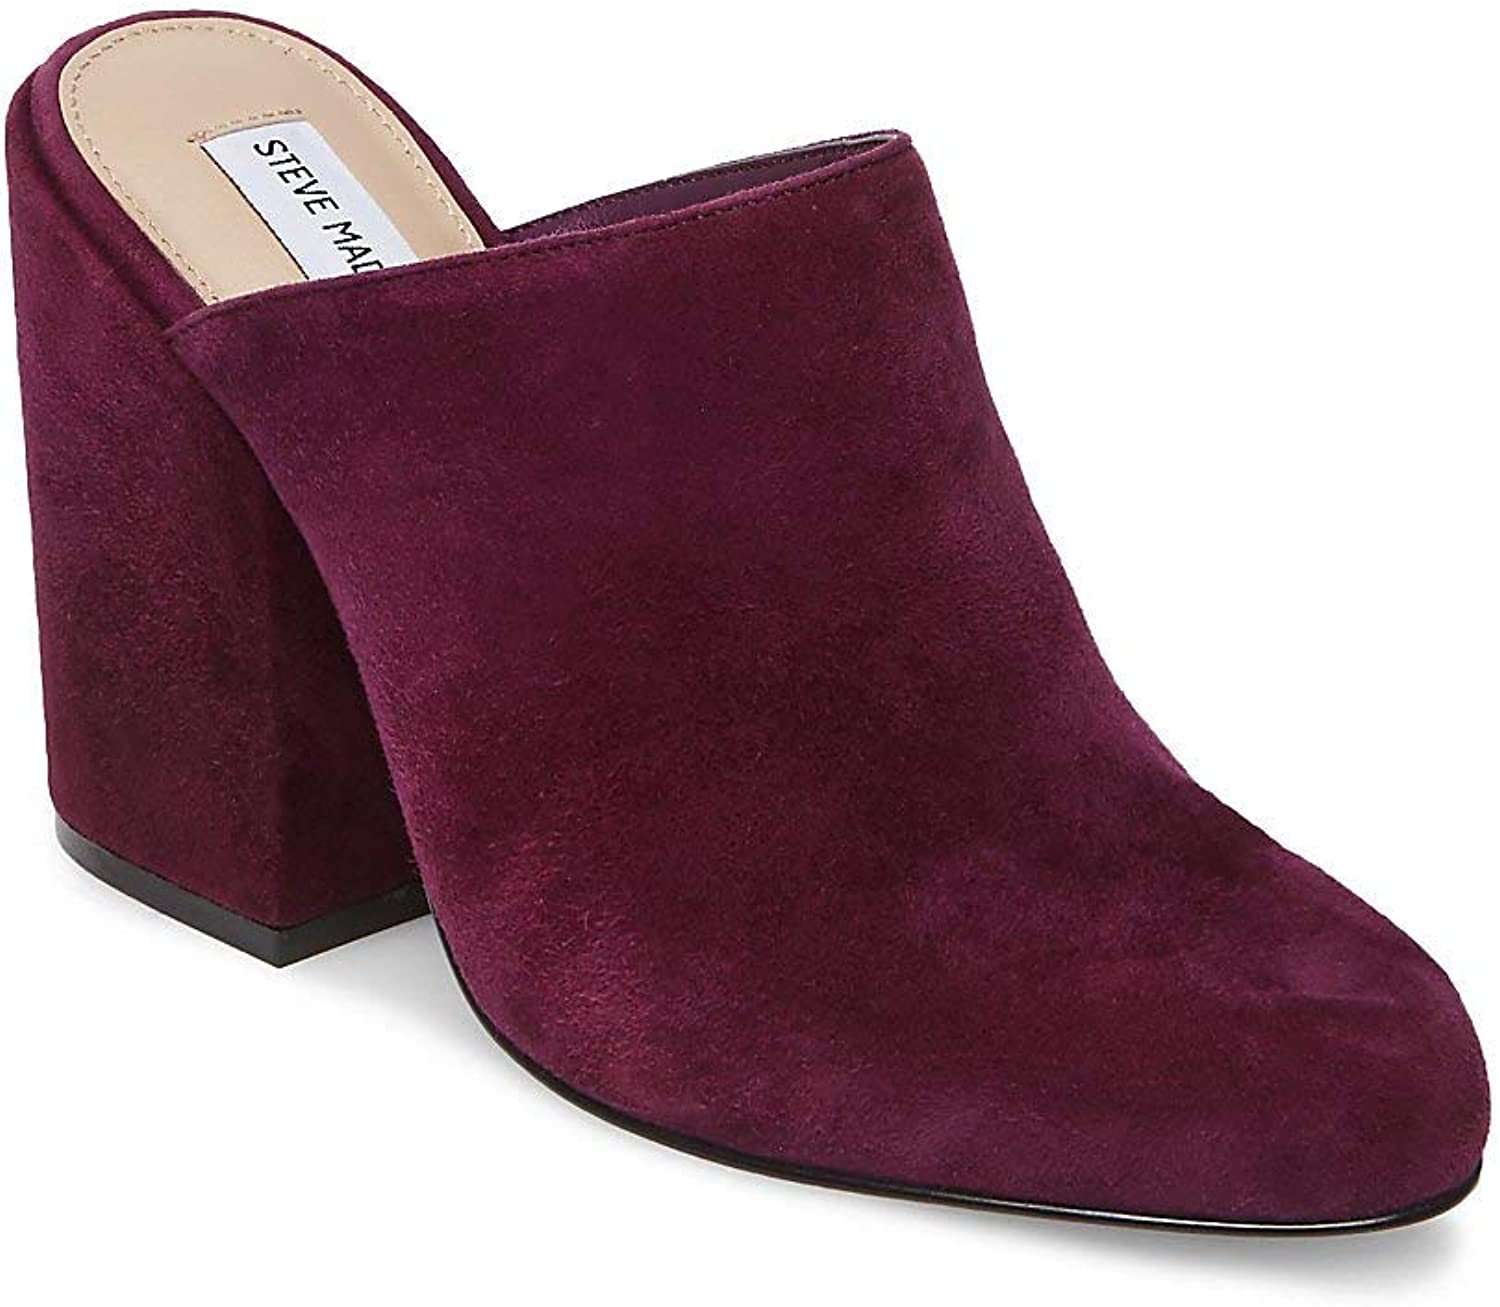 Steve Madden Womens Stela Suede Round Toe Mules